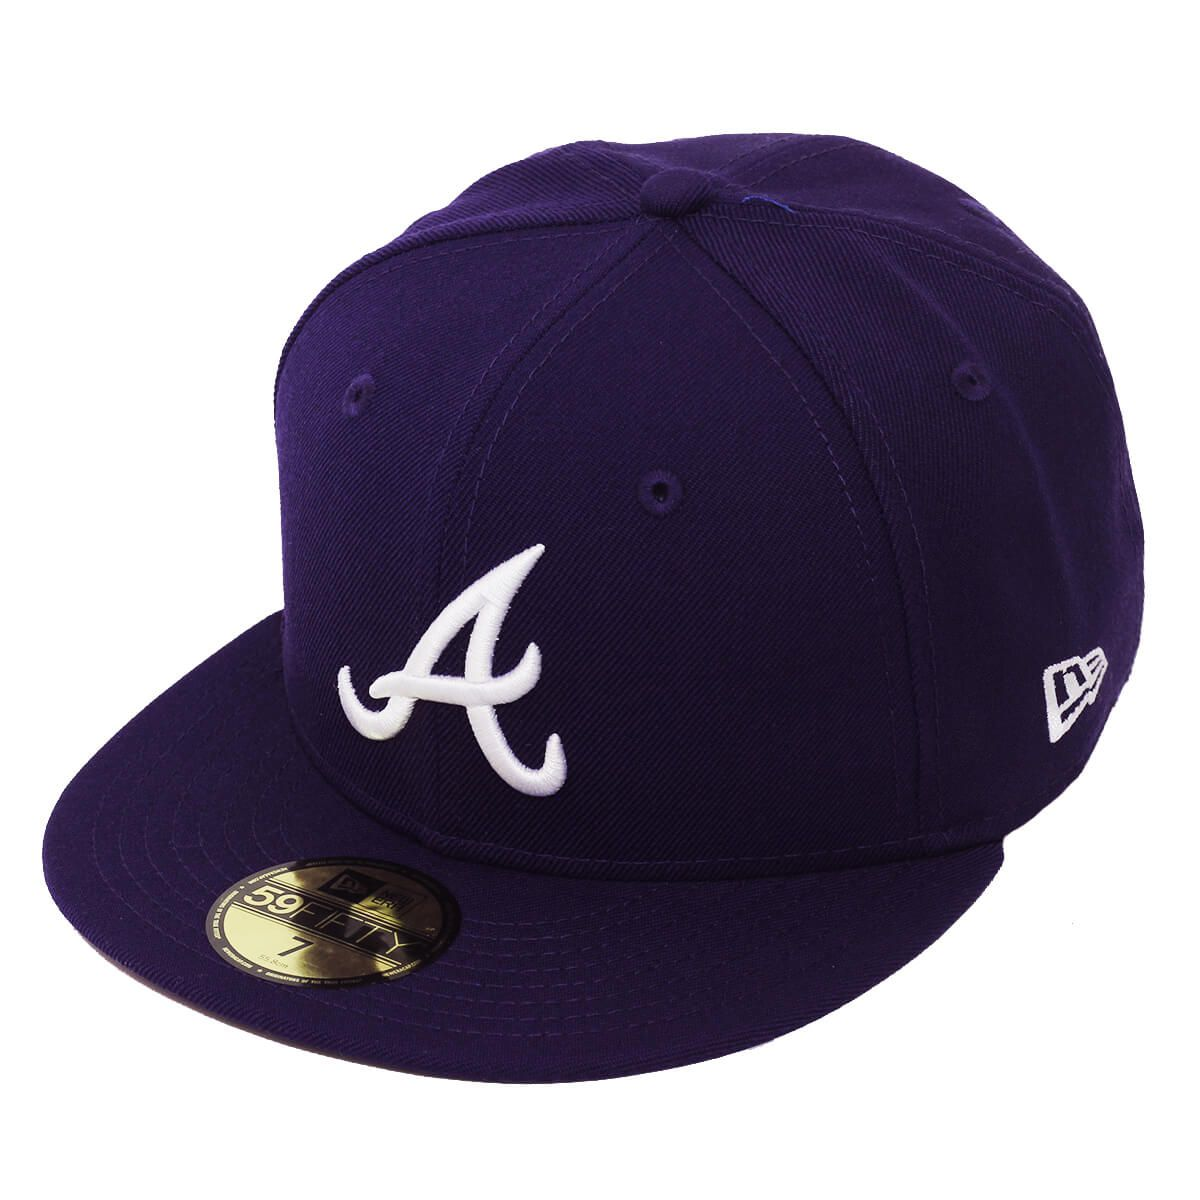 Boné New Era Aba Reta 5950 MLB Atlanta Basic Colors Roxo